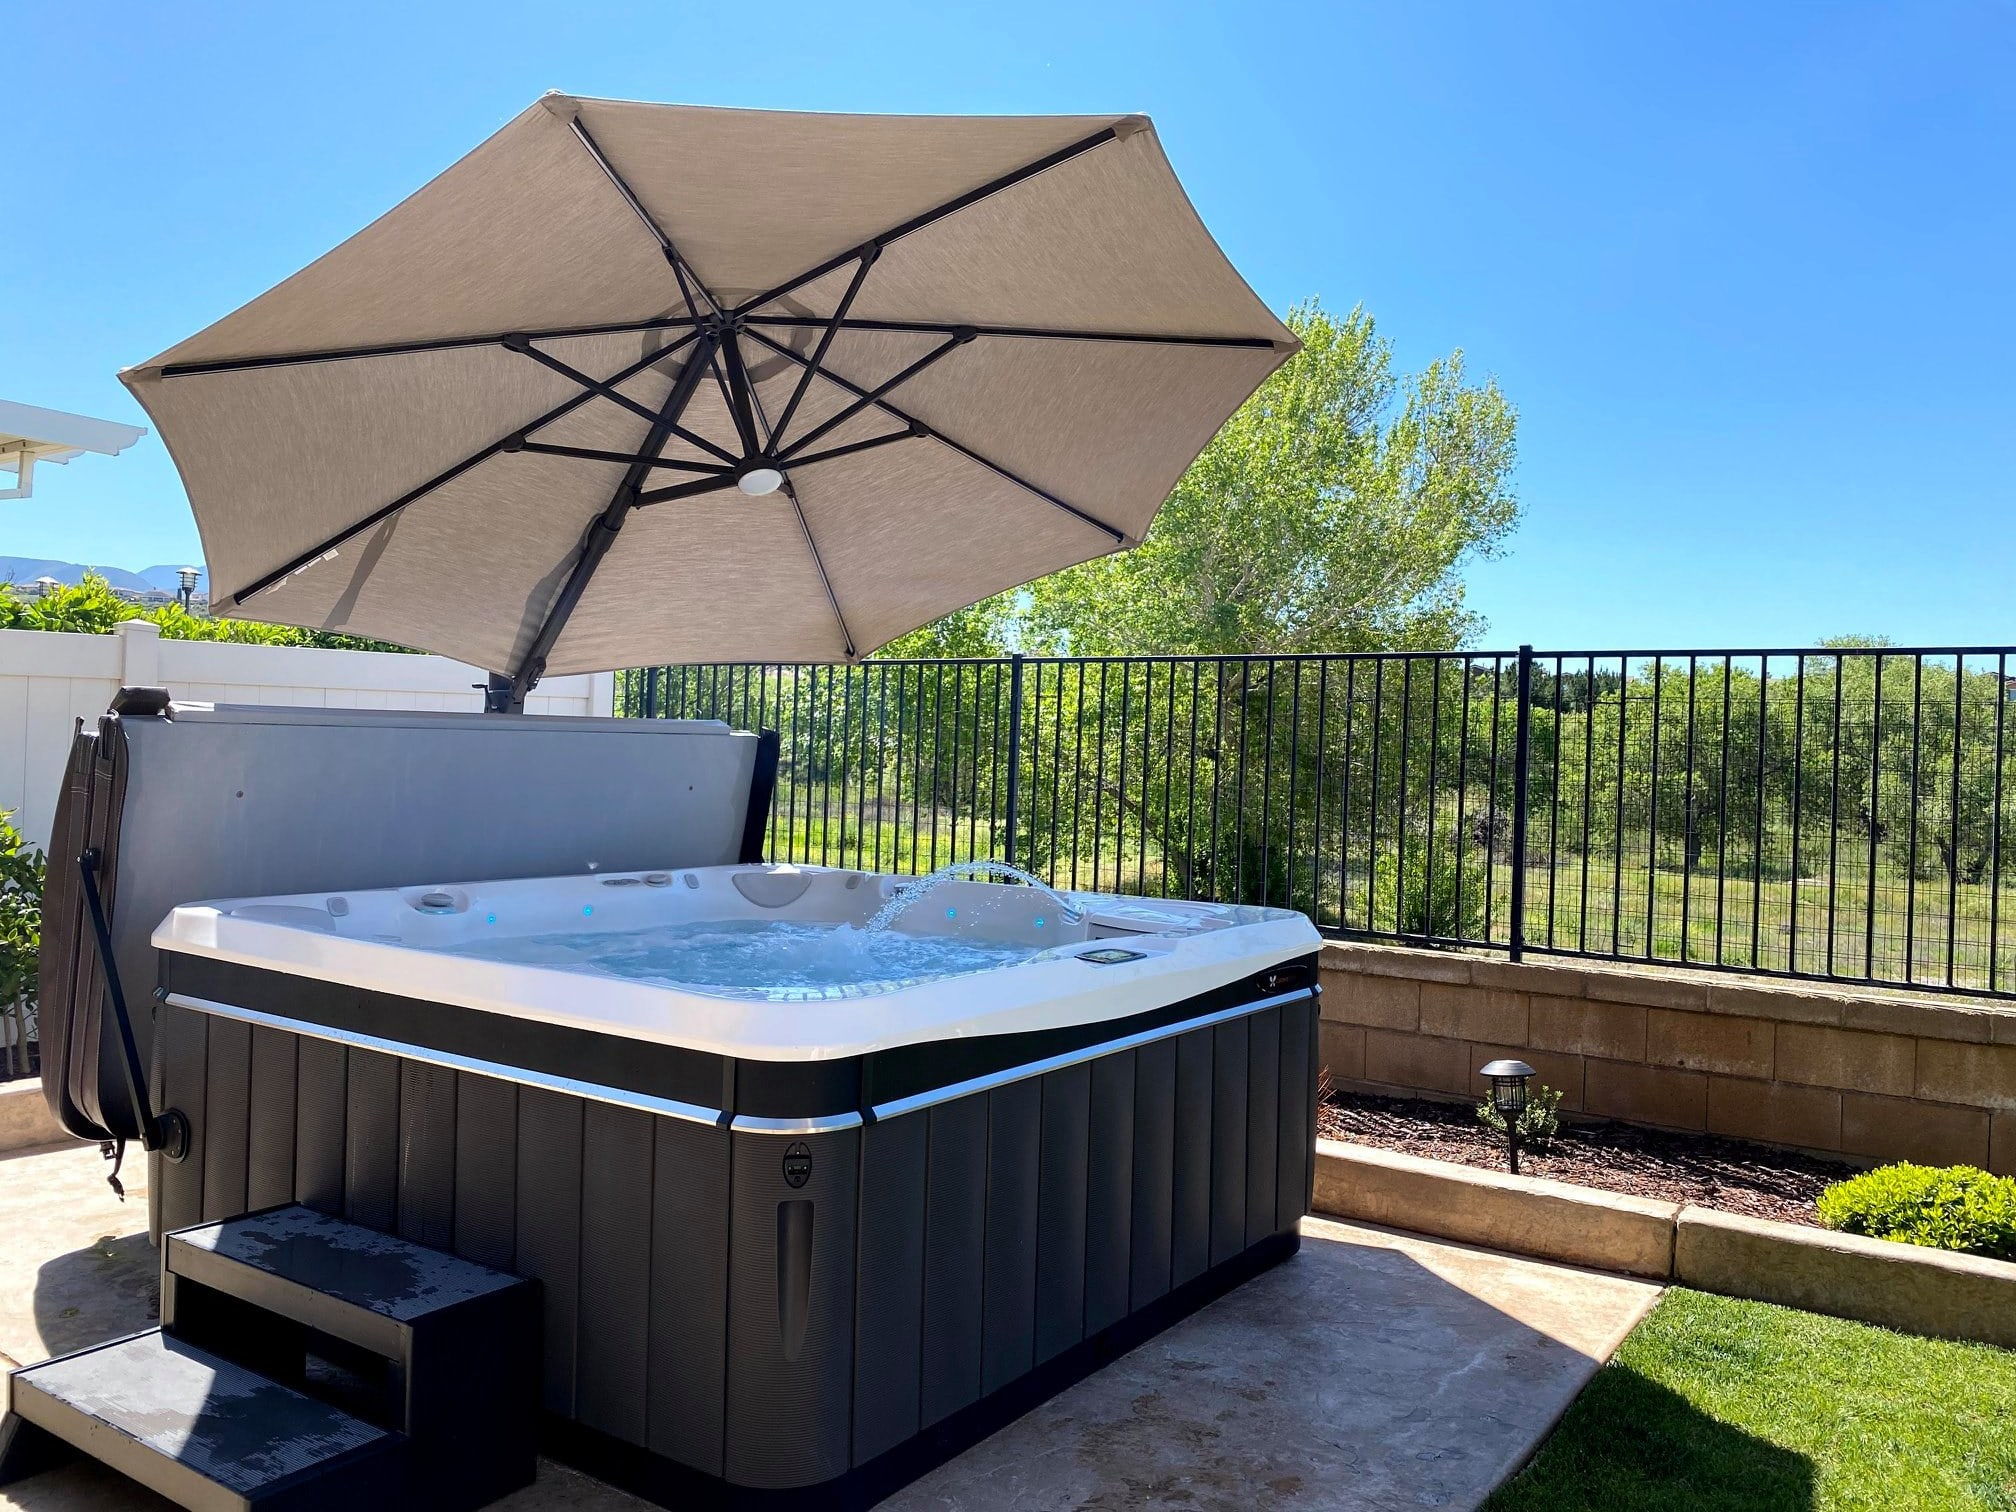 caldera hot tub umbrella installation in Los Angeles, CA